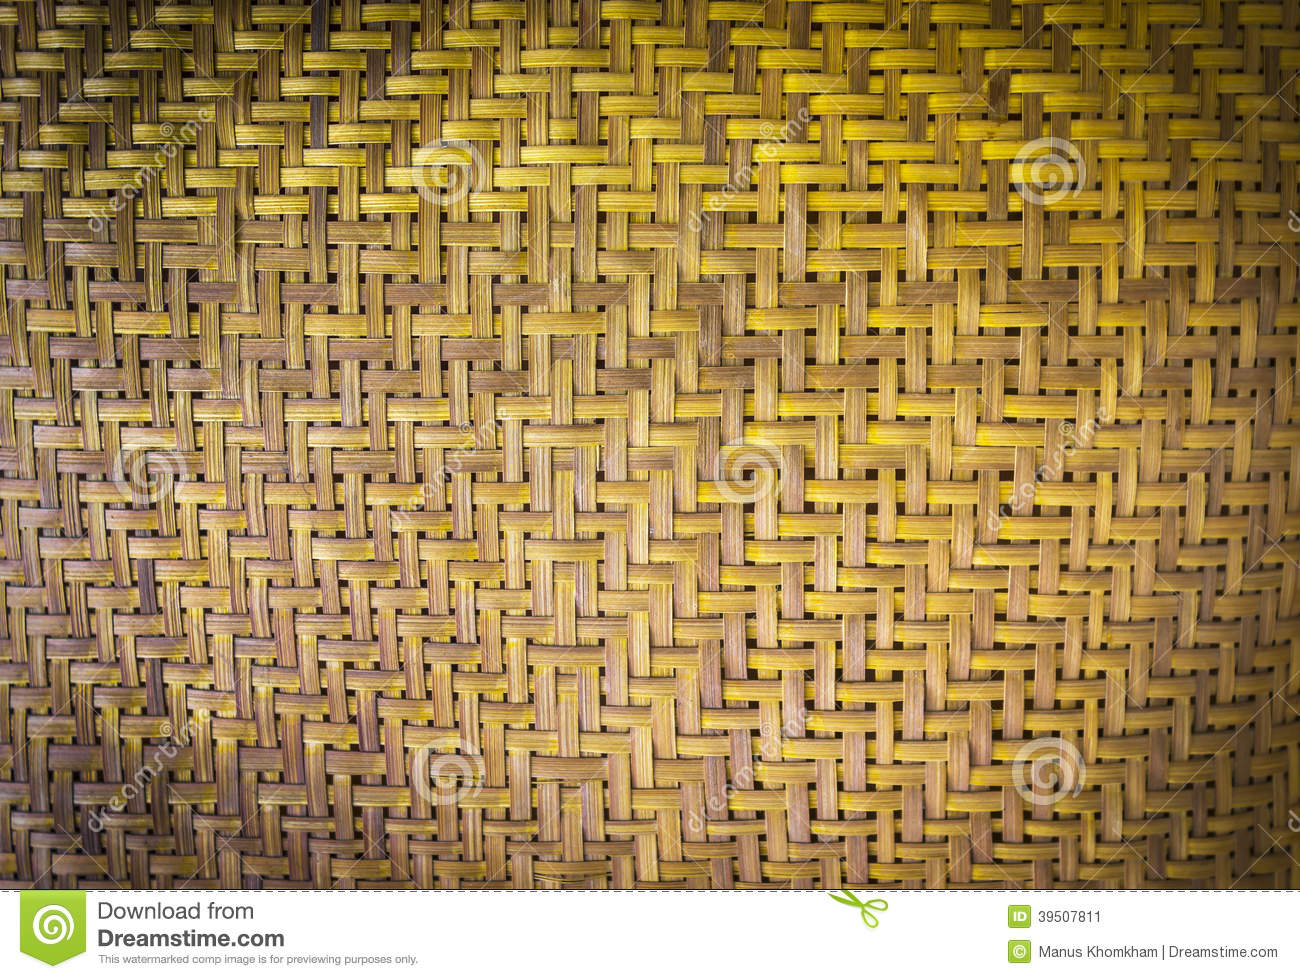 Bamboo ratten background